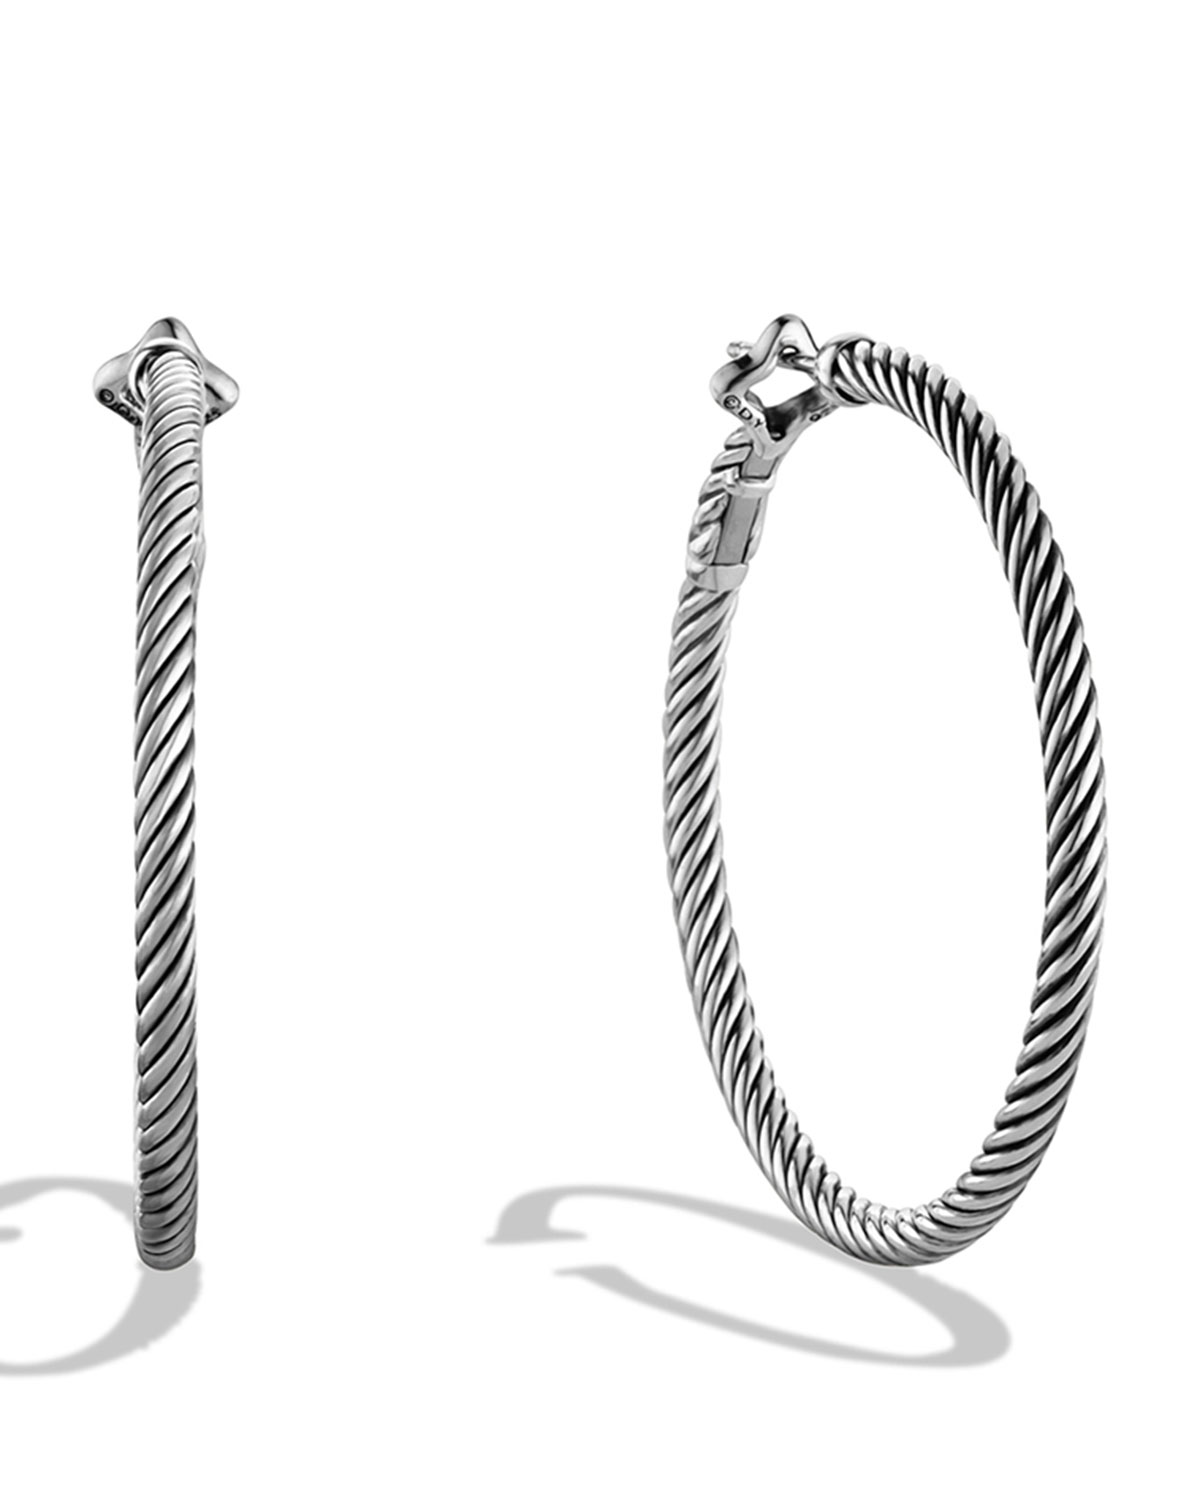 Cable Clics Large Hoop Earrings